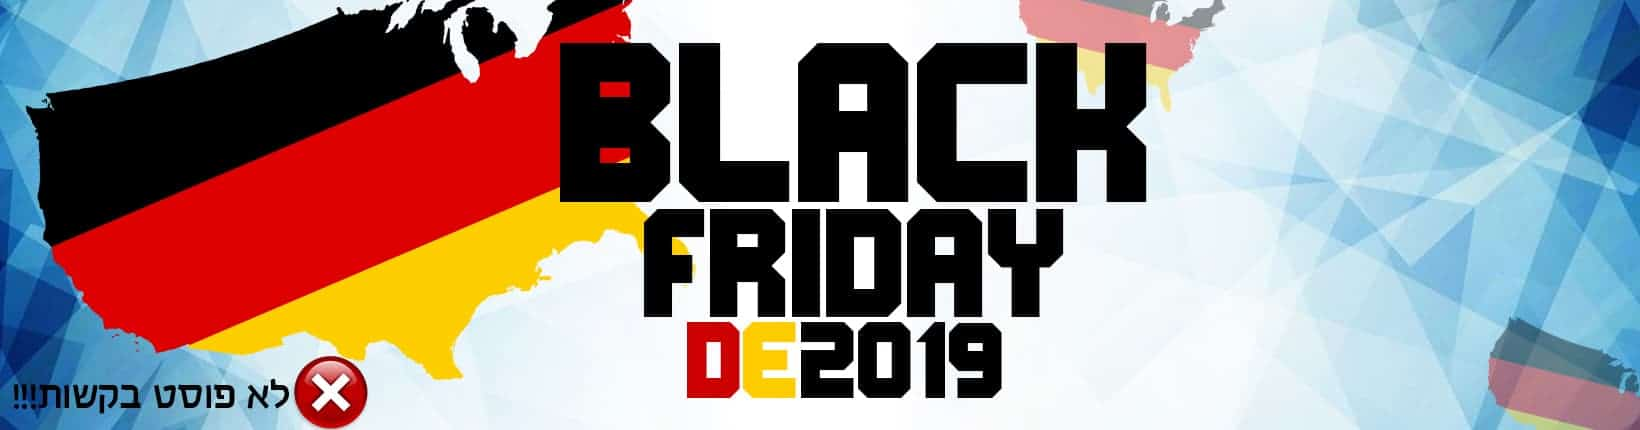 Black Friday De 2019